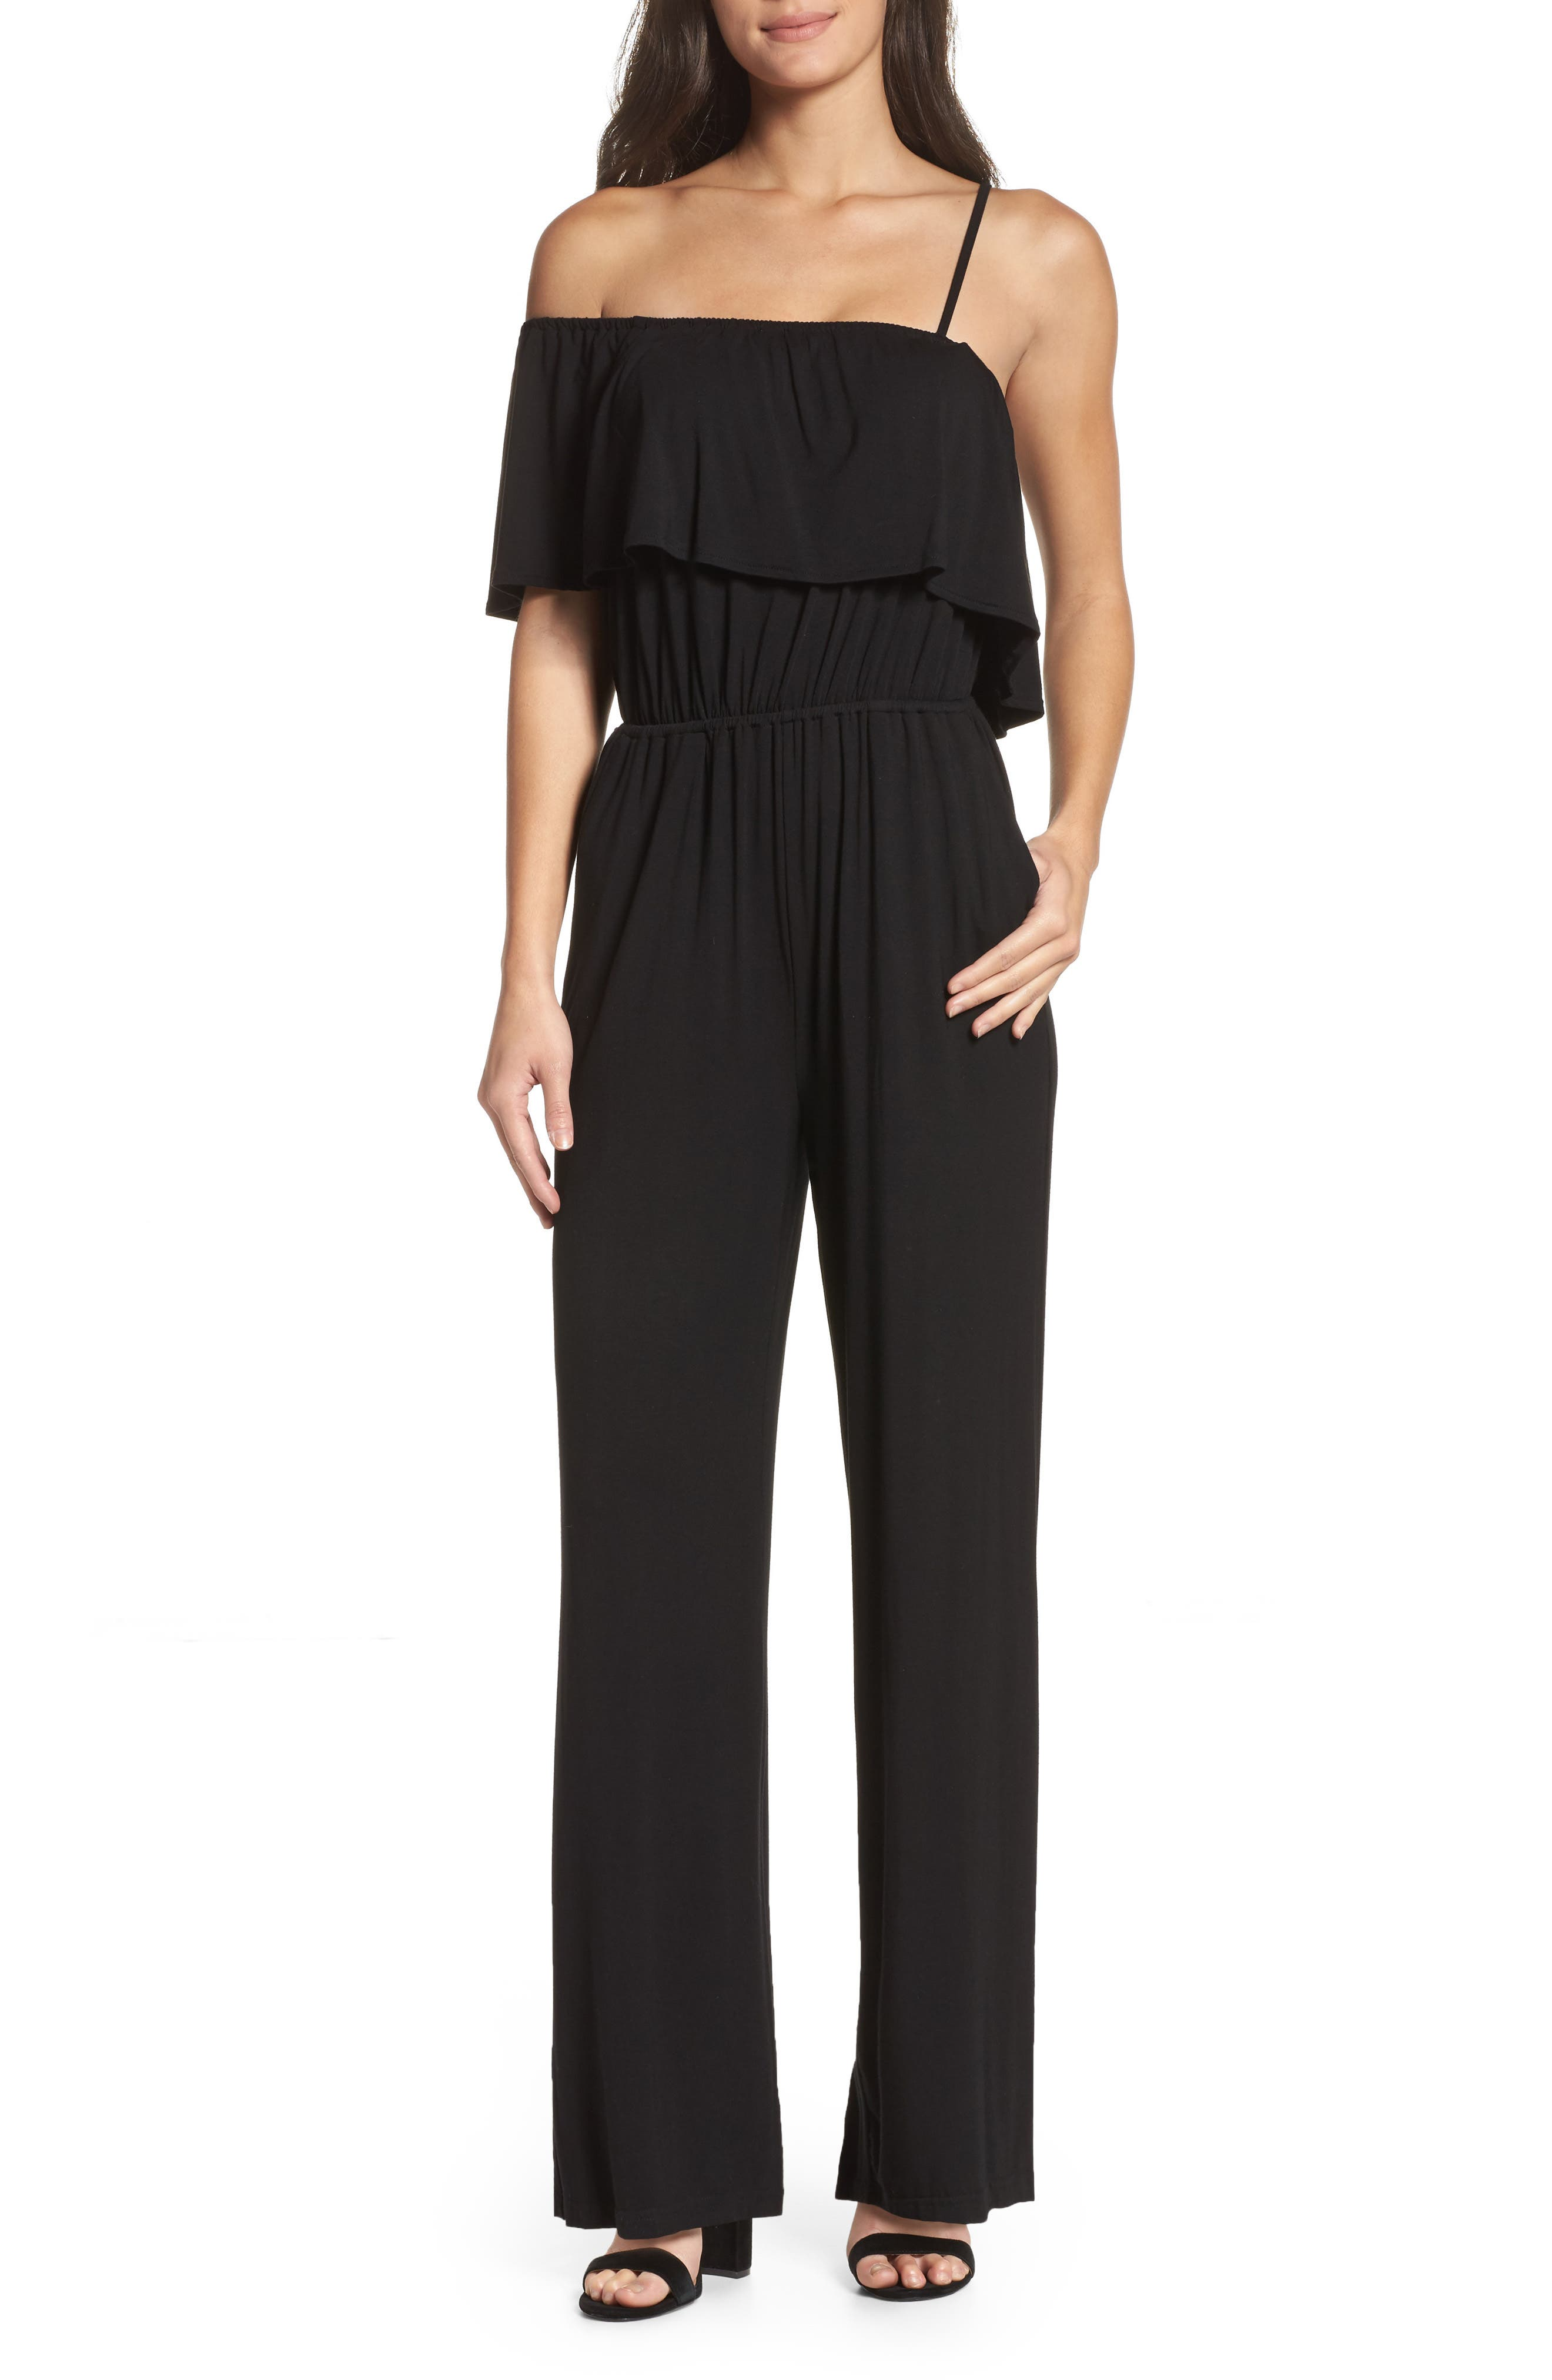 Mayana Jumpsuit,                             Main thumbnail 1, color,                             001